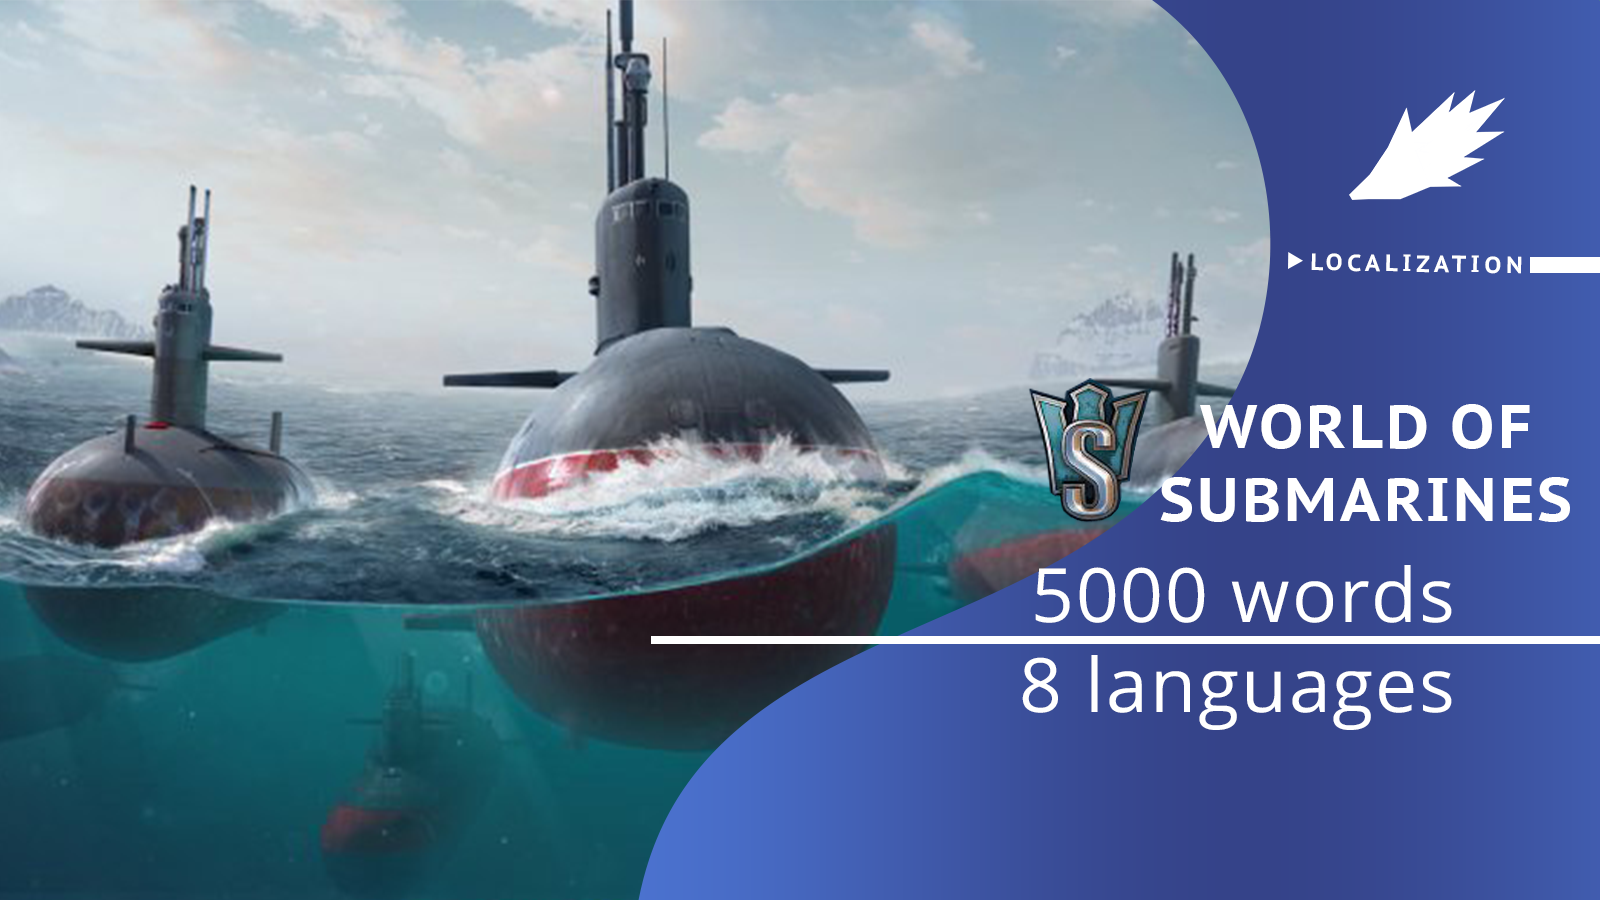 project_world of submarines_en